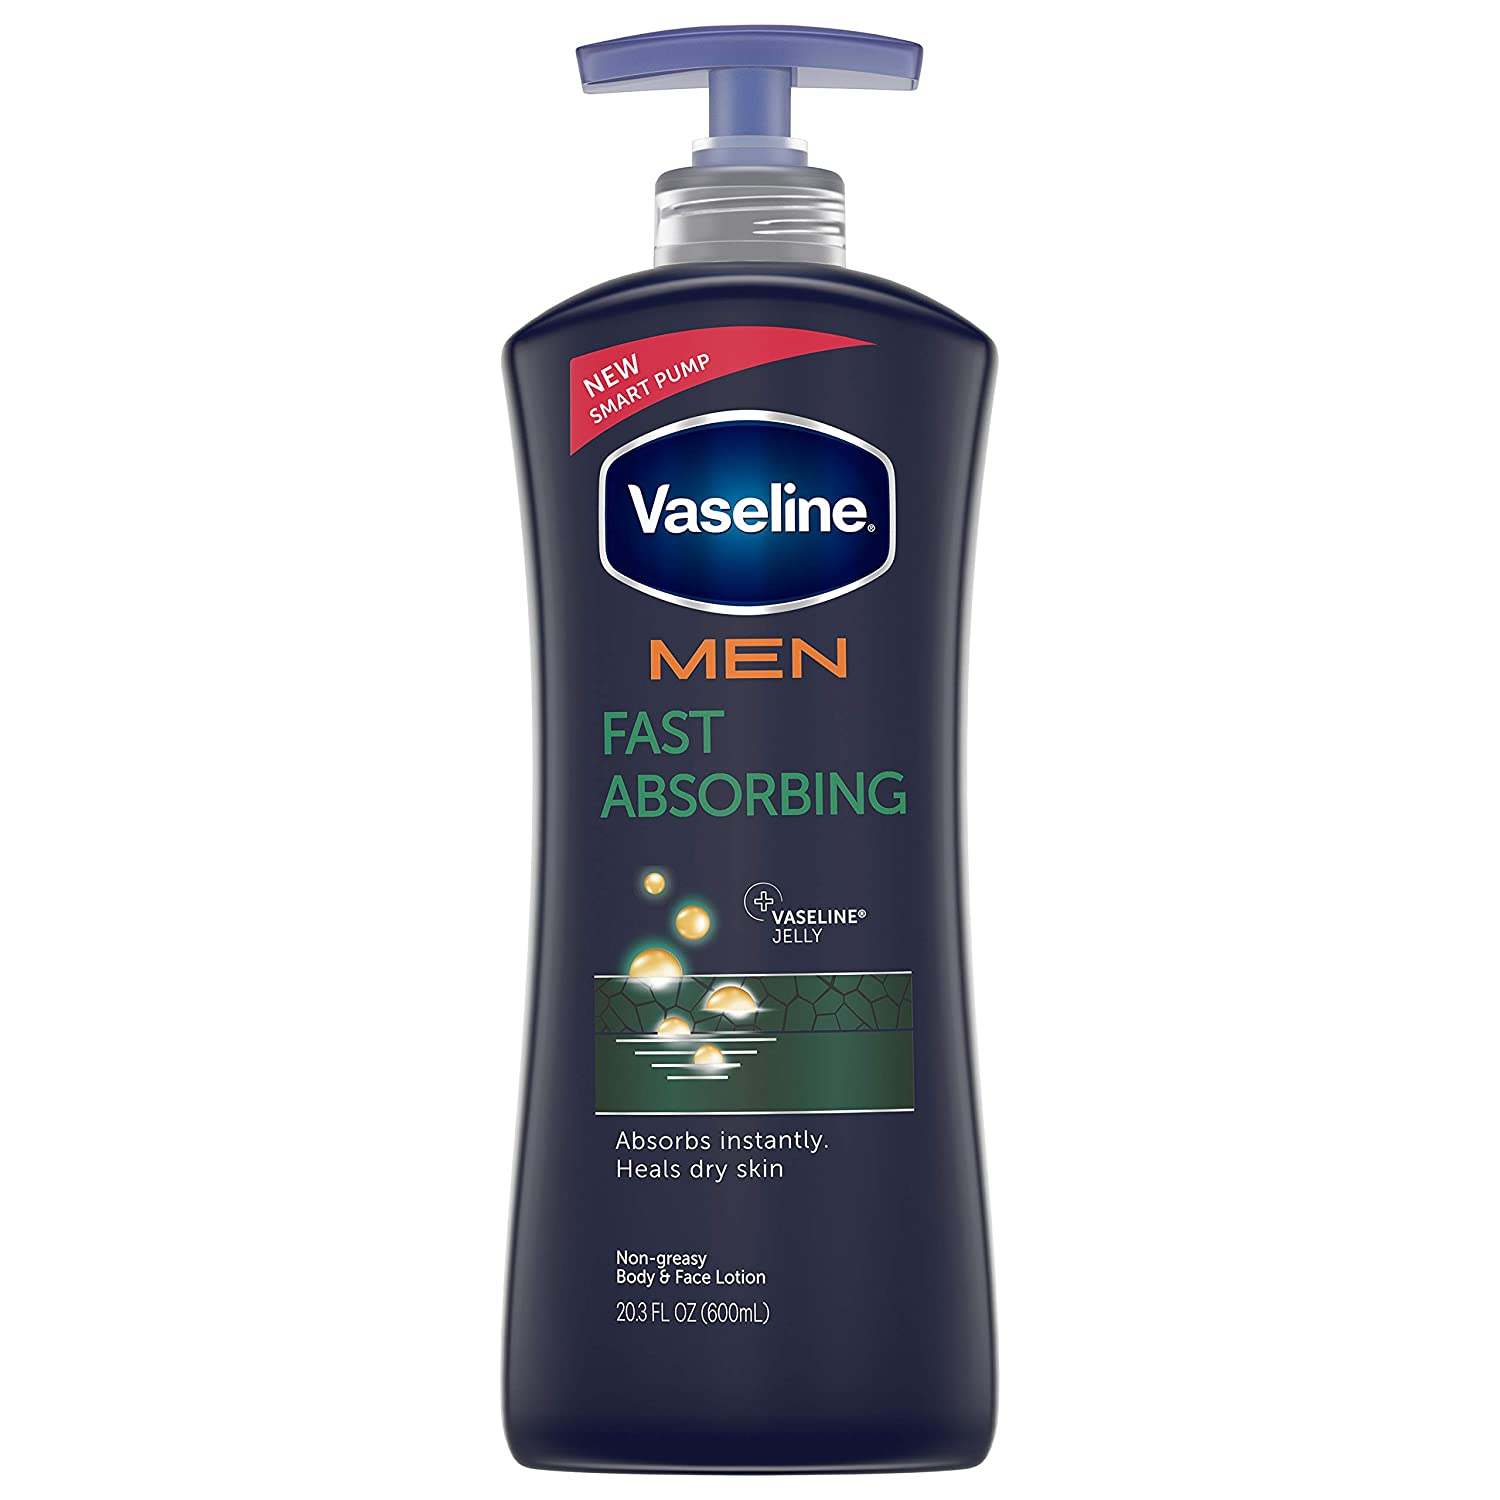 Vaseline facial lotion